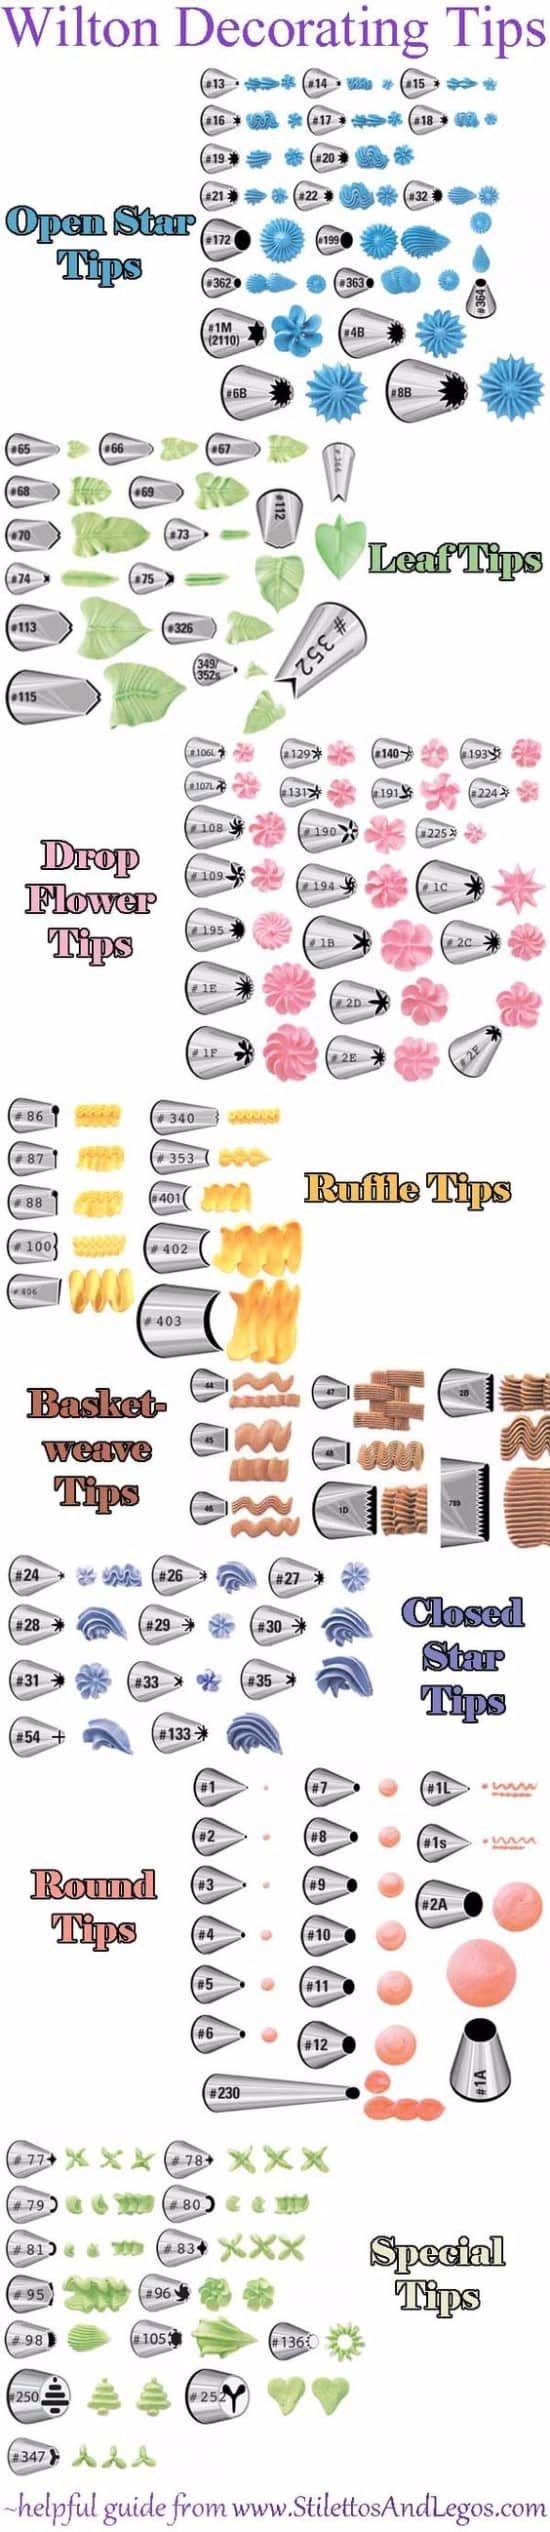 Use these handy Wilton Tips charts whenever you're planning to frost a cake, and never be without the perfect tip! All the most popular tip guides, along with guides for flowers, cupcakes and more!